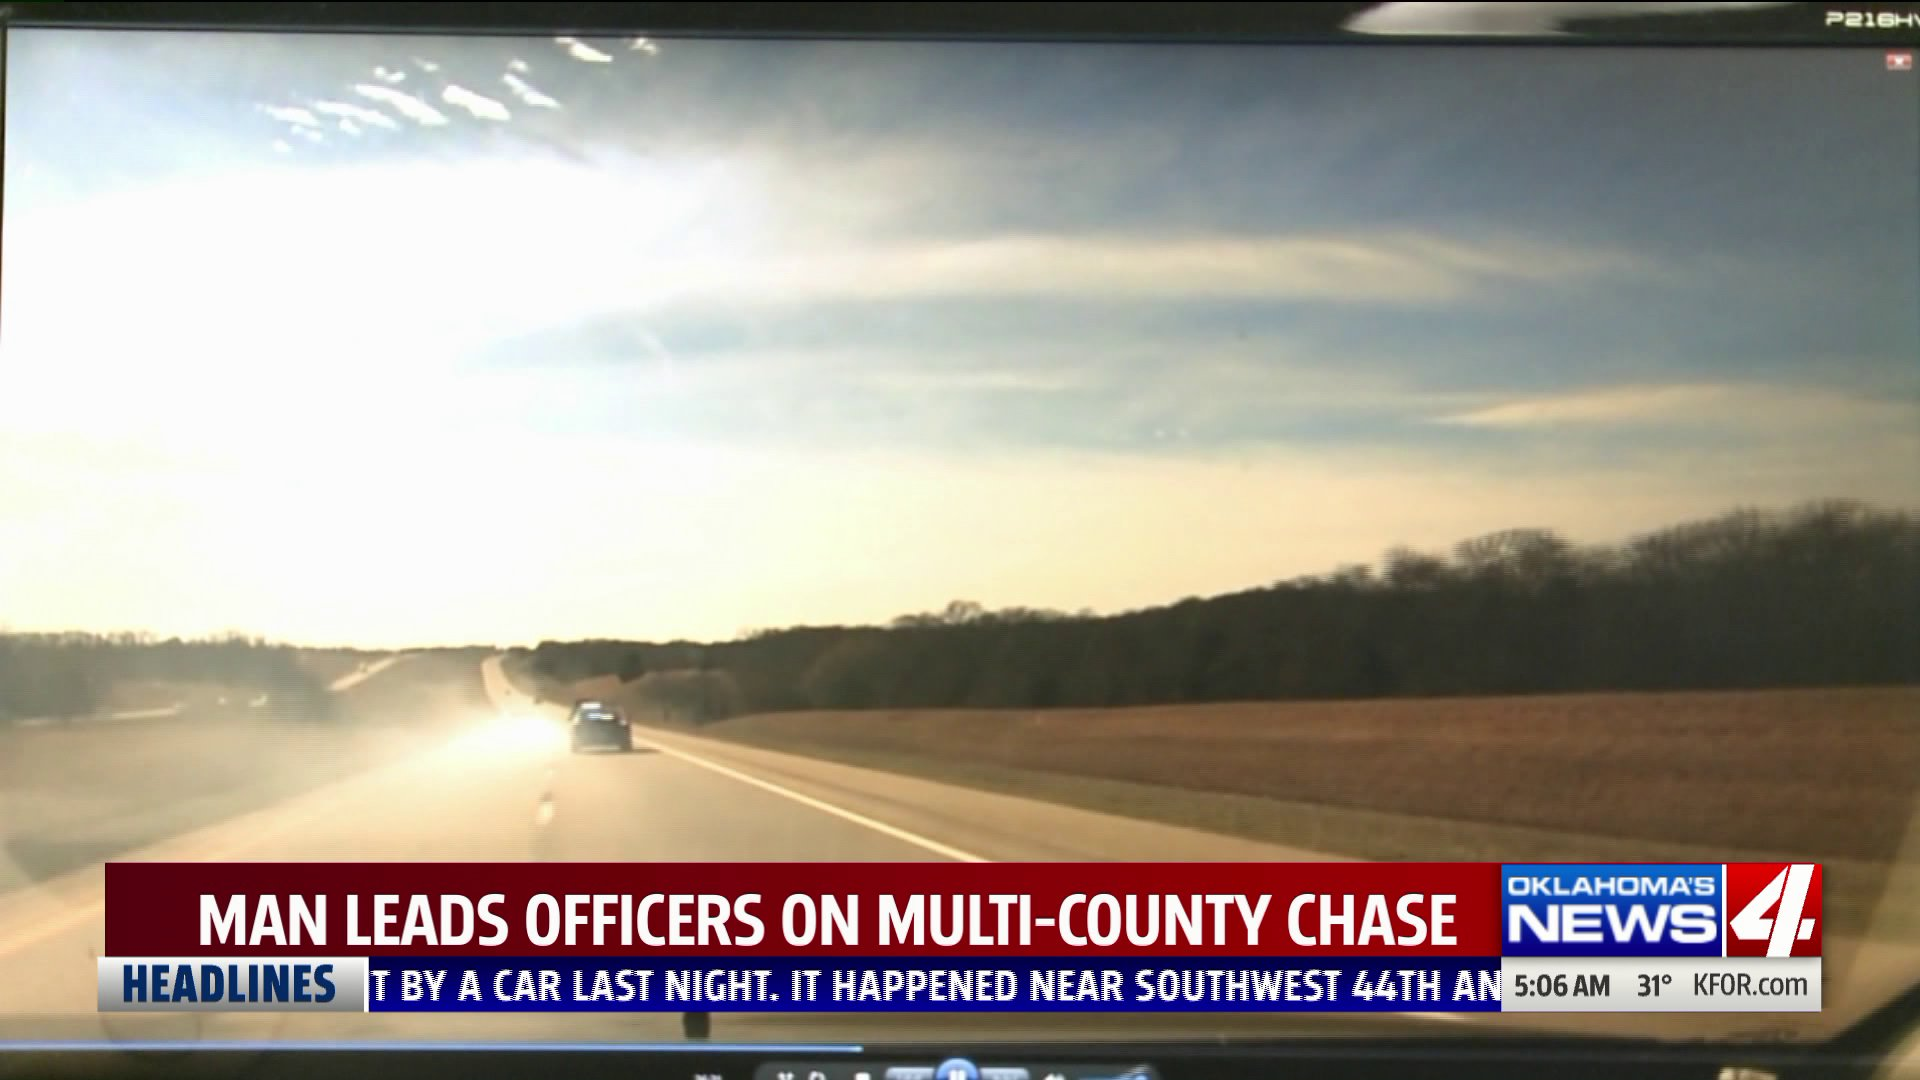 Multi-county chase